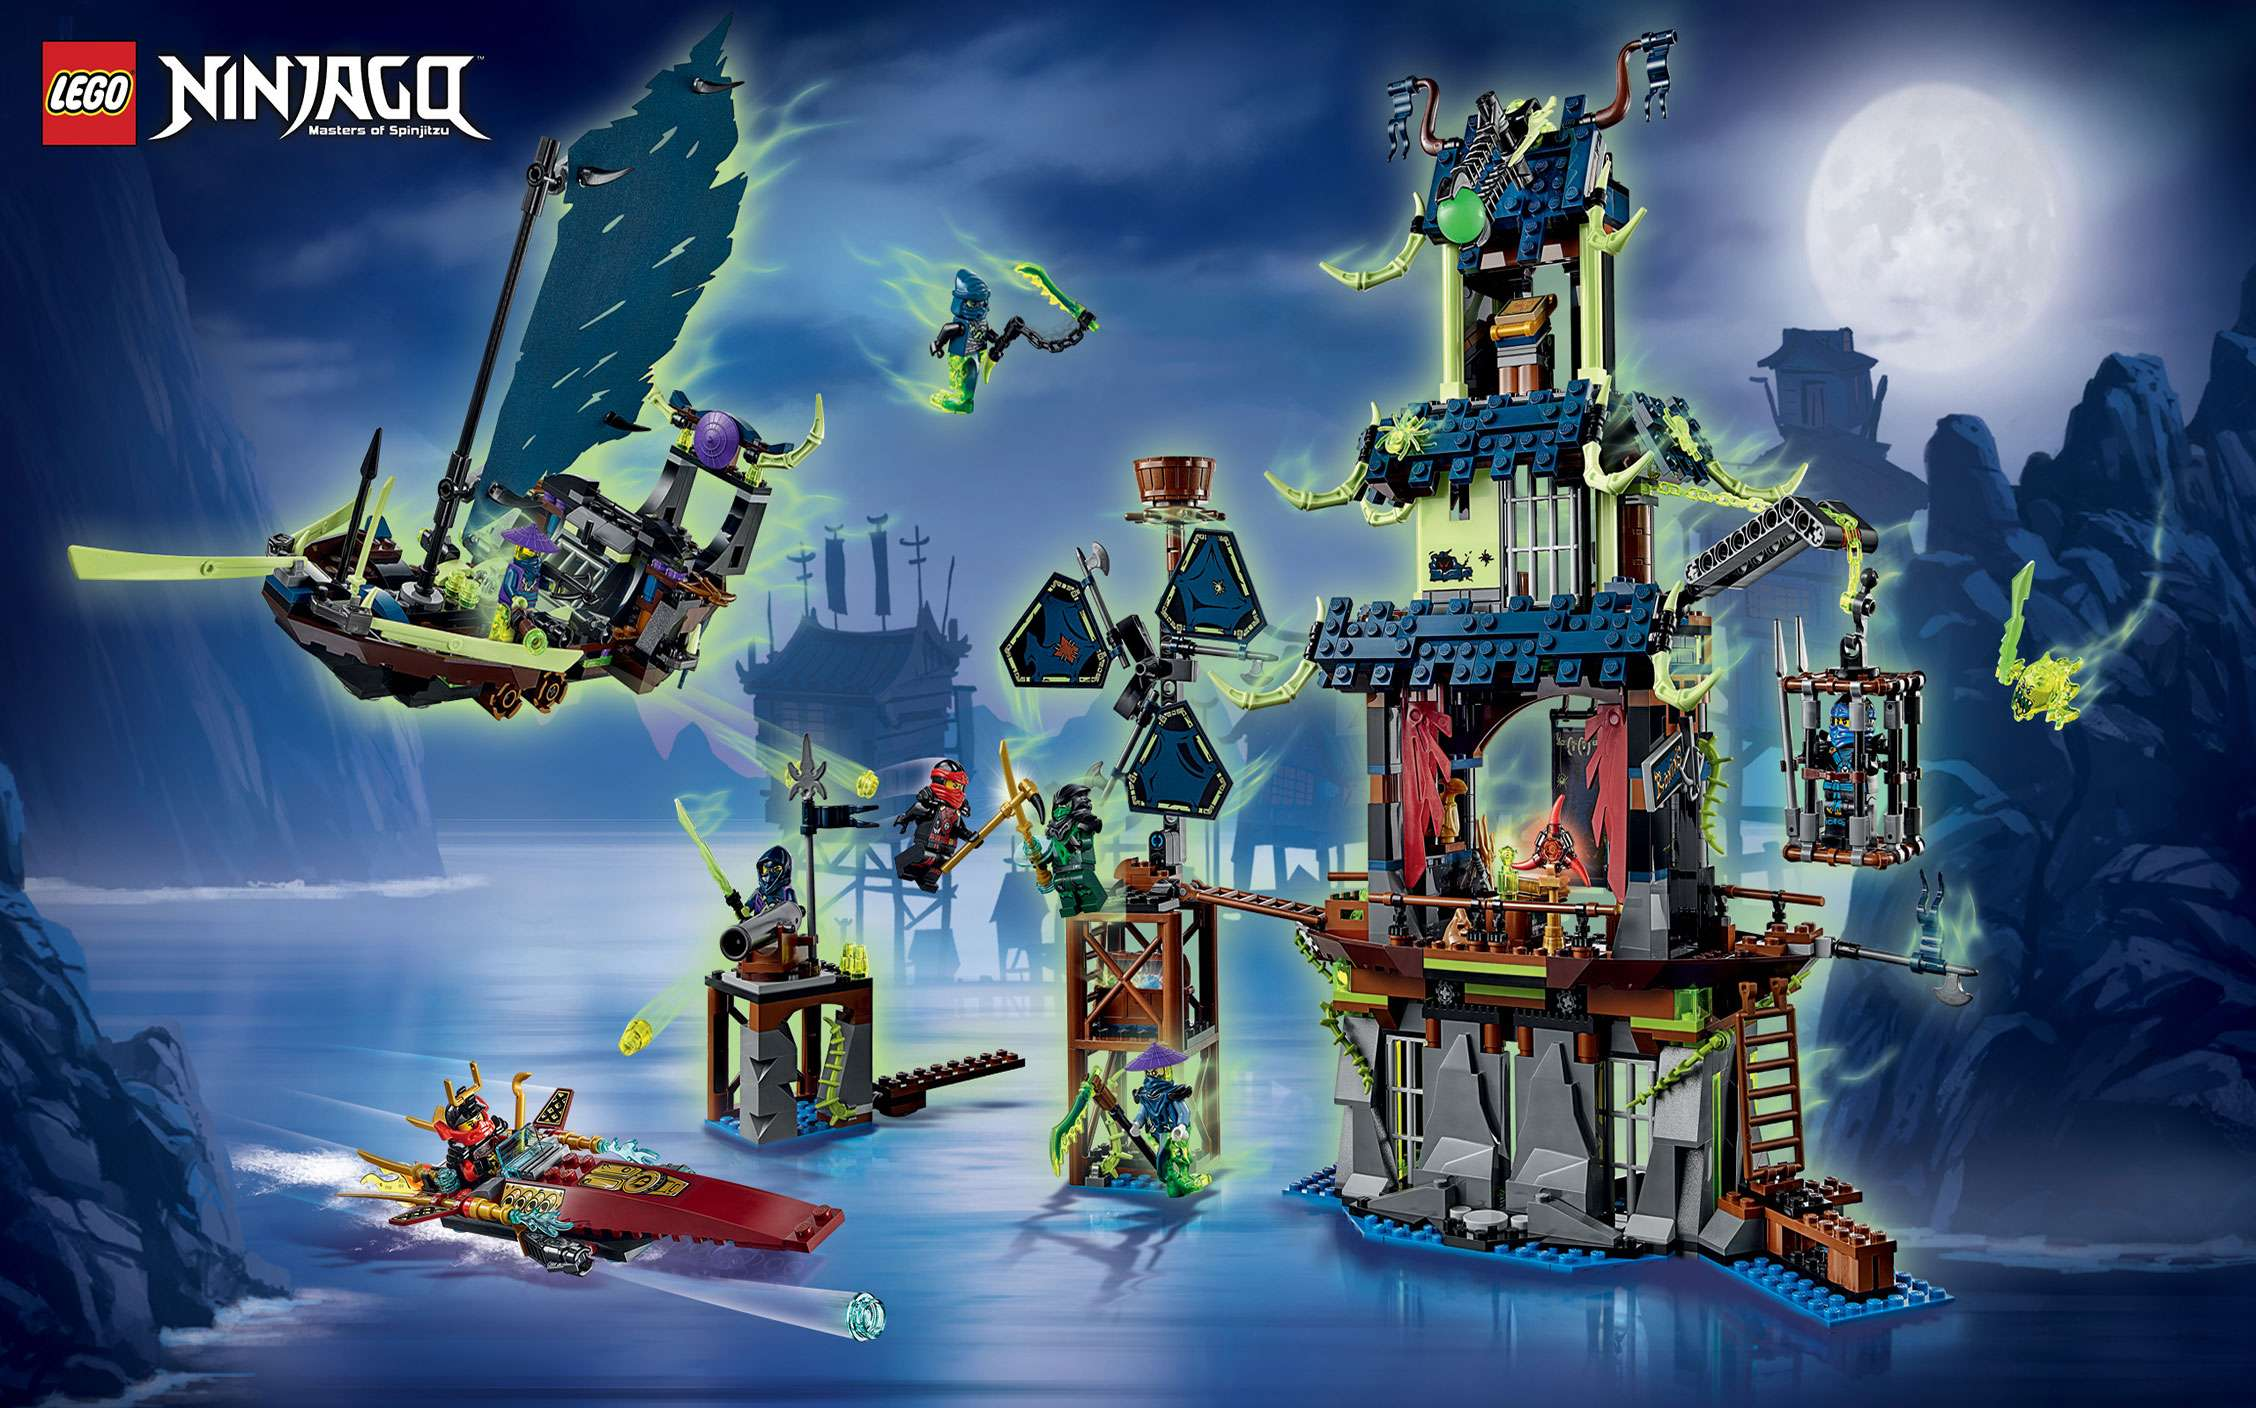 lego ninjago wallpaper high - photo #35